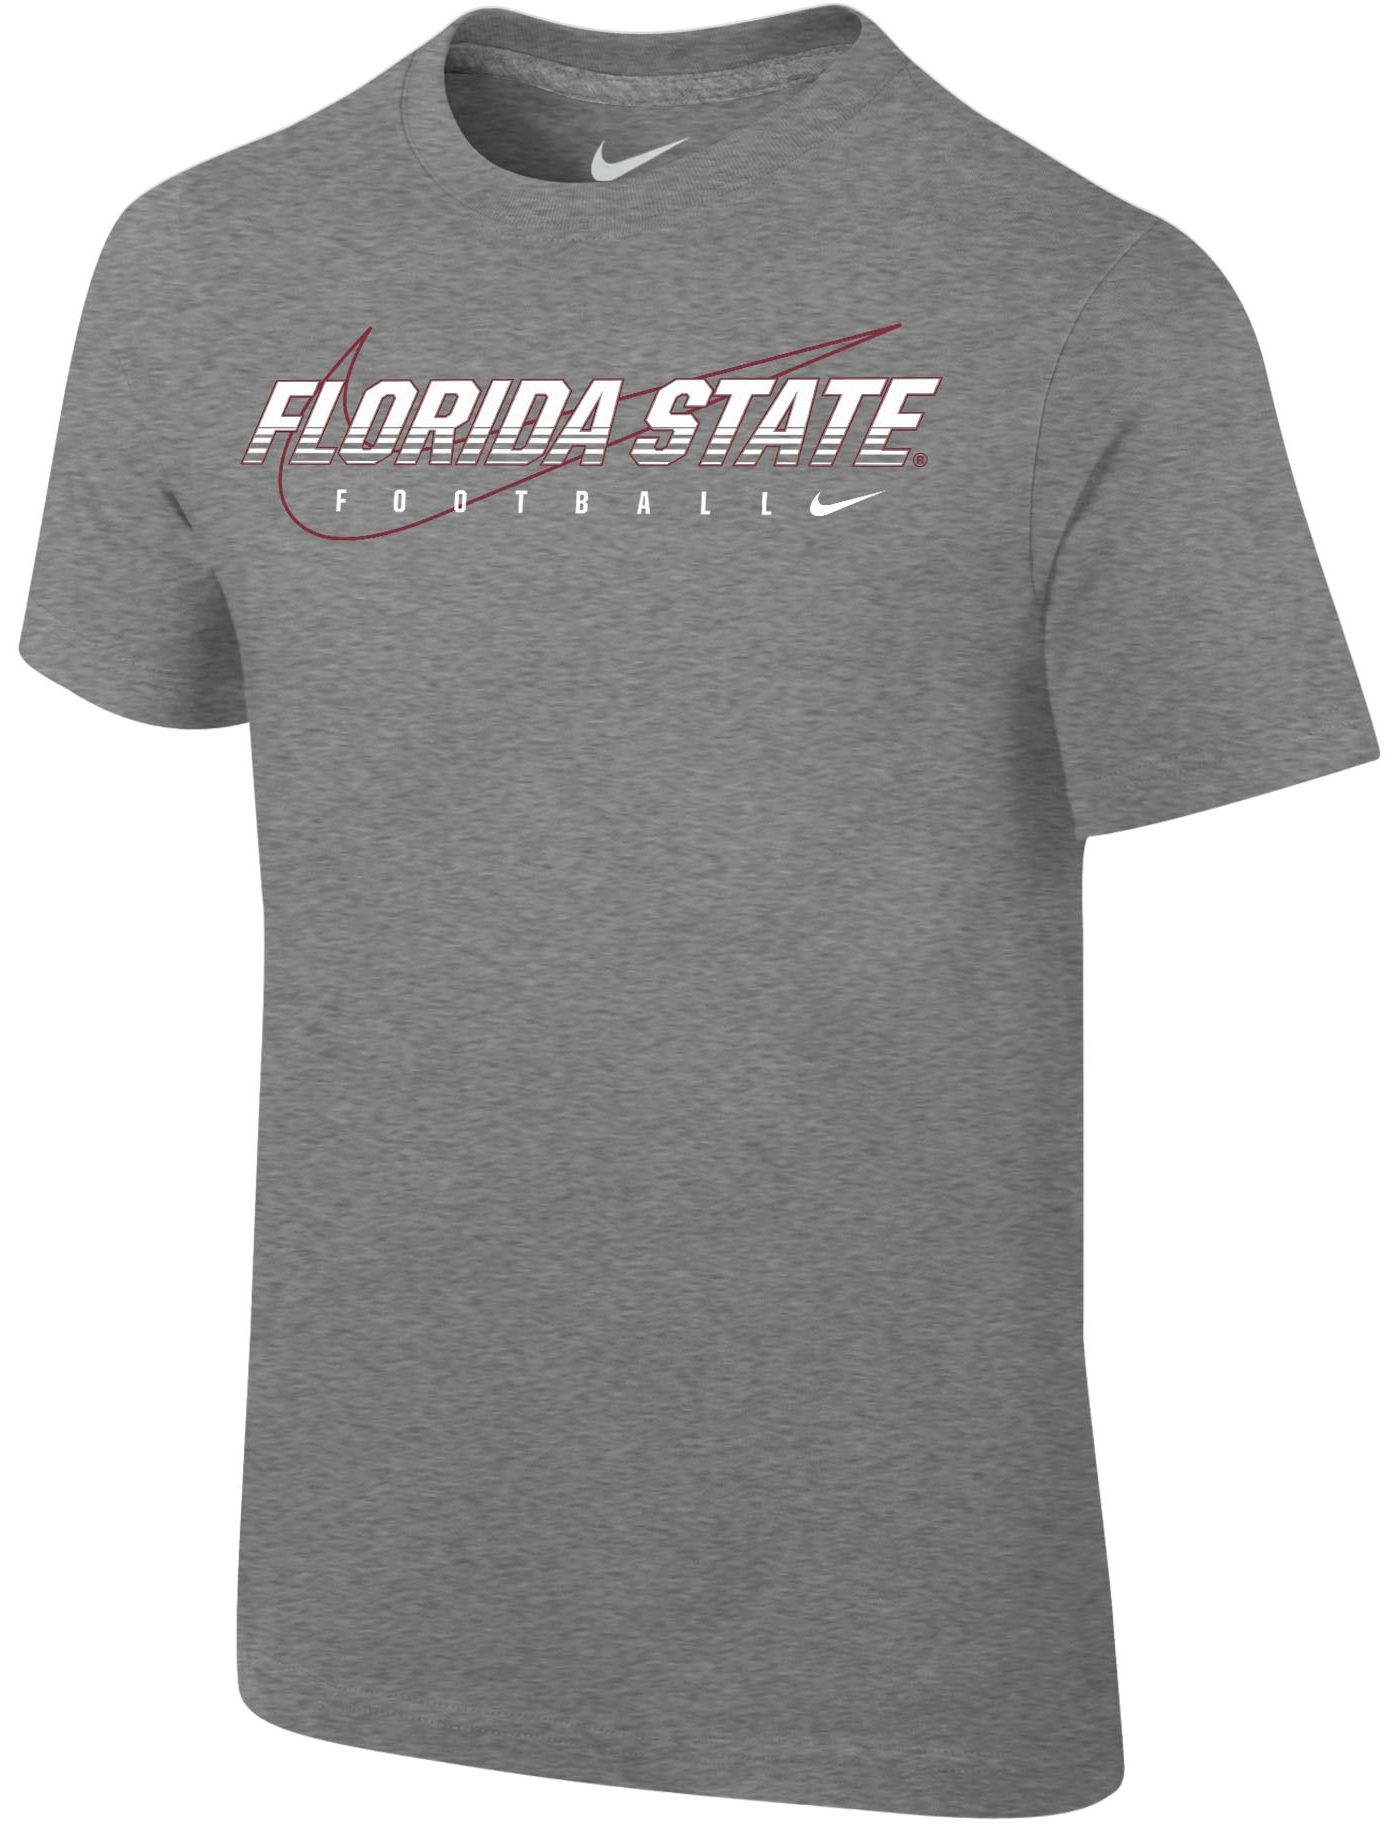 Nike Youth Florida State Seminoles Grey Football Dri-FIT Cotton Preschool Facility T-Shirt